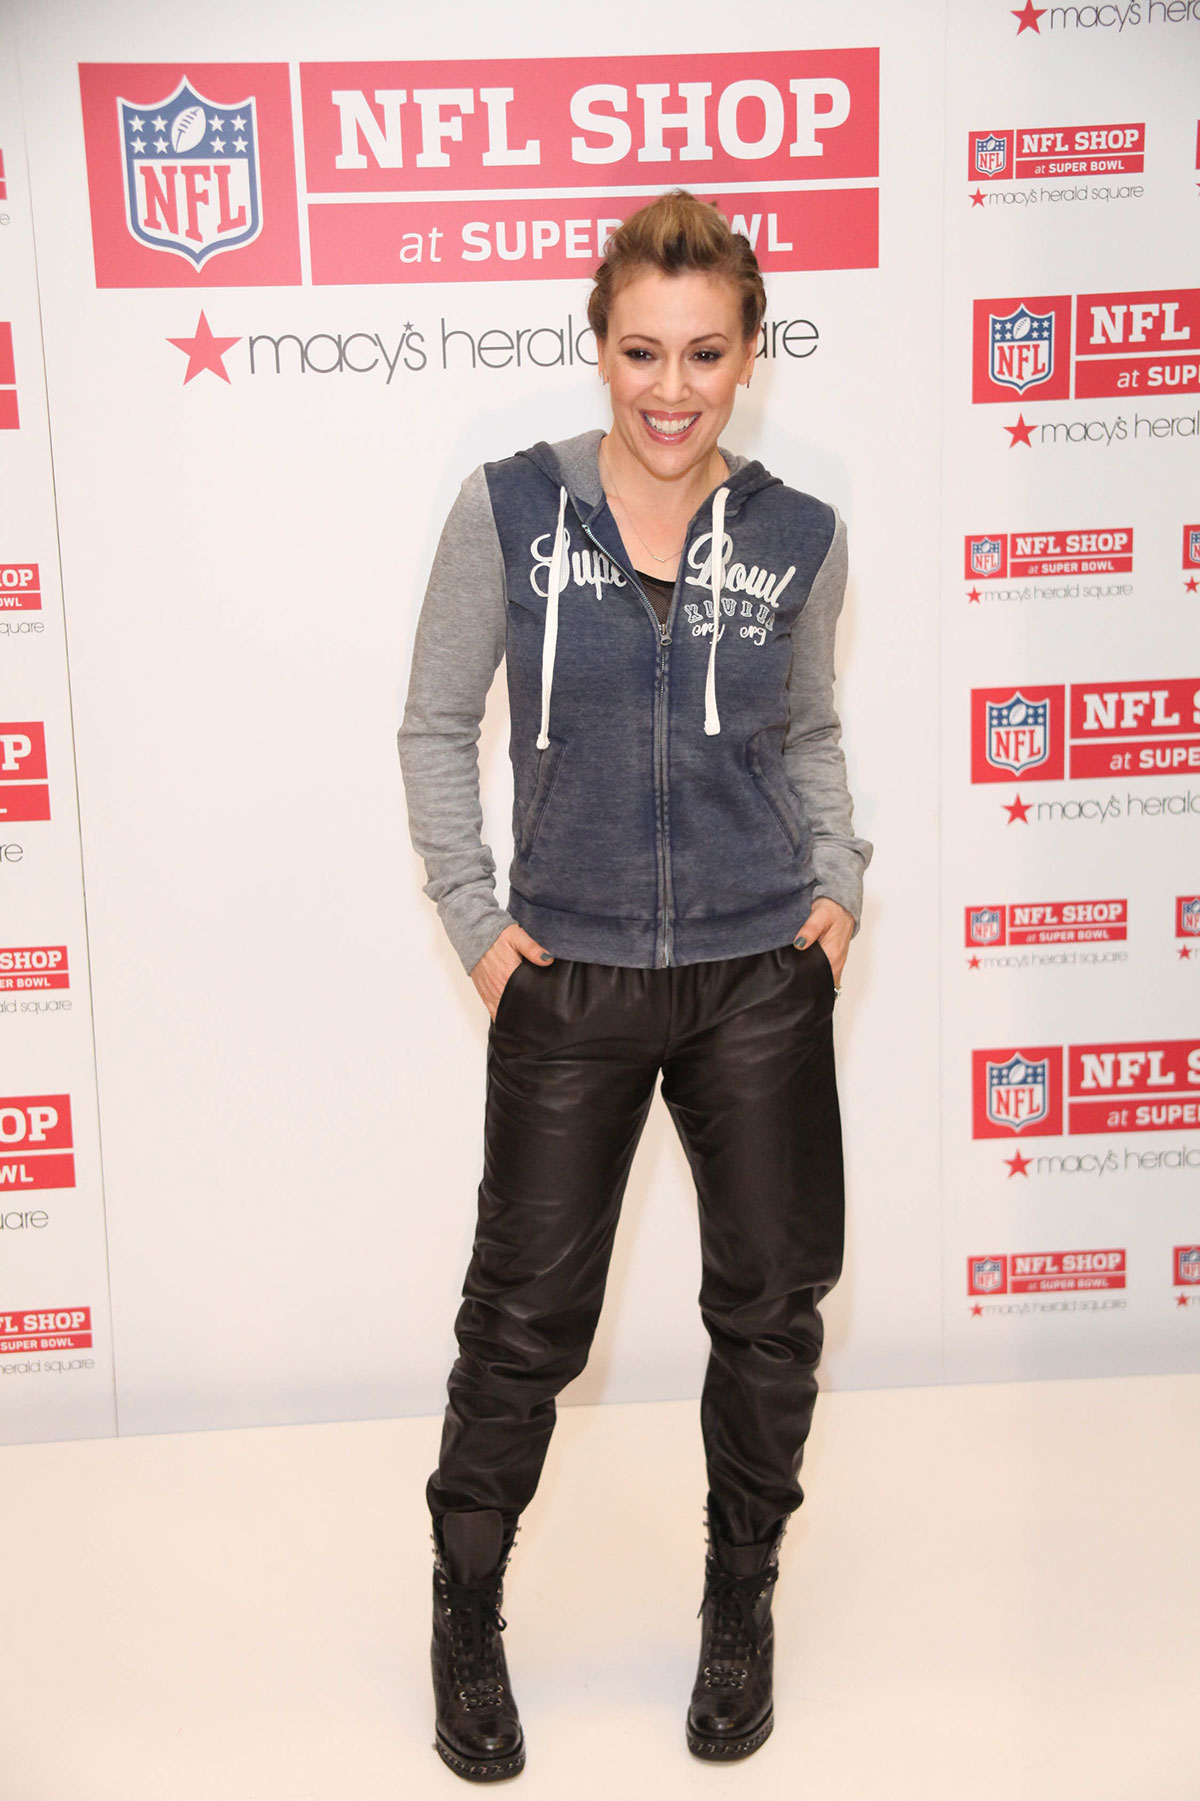 Alyssa Milano attends The NFL Shop event for Super Bowl XLVIII